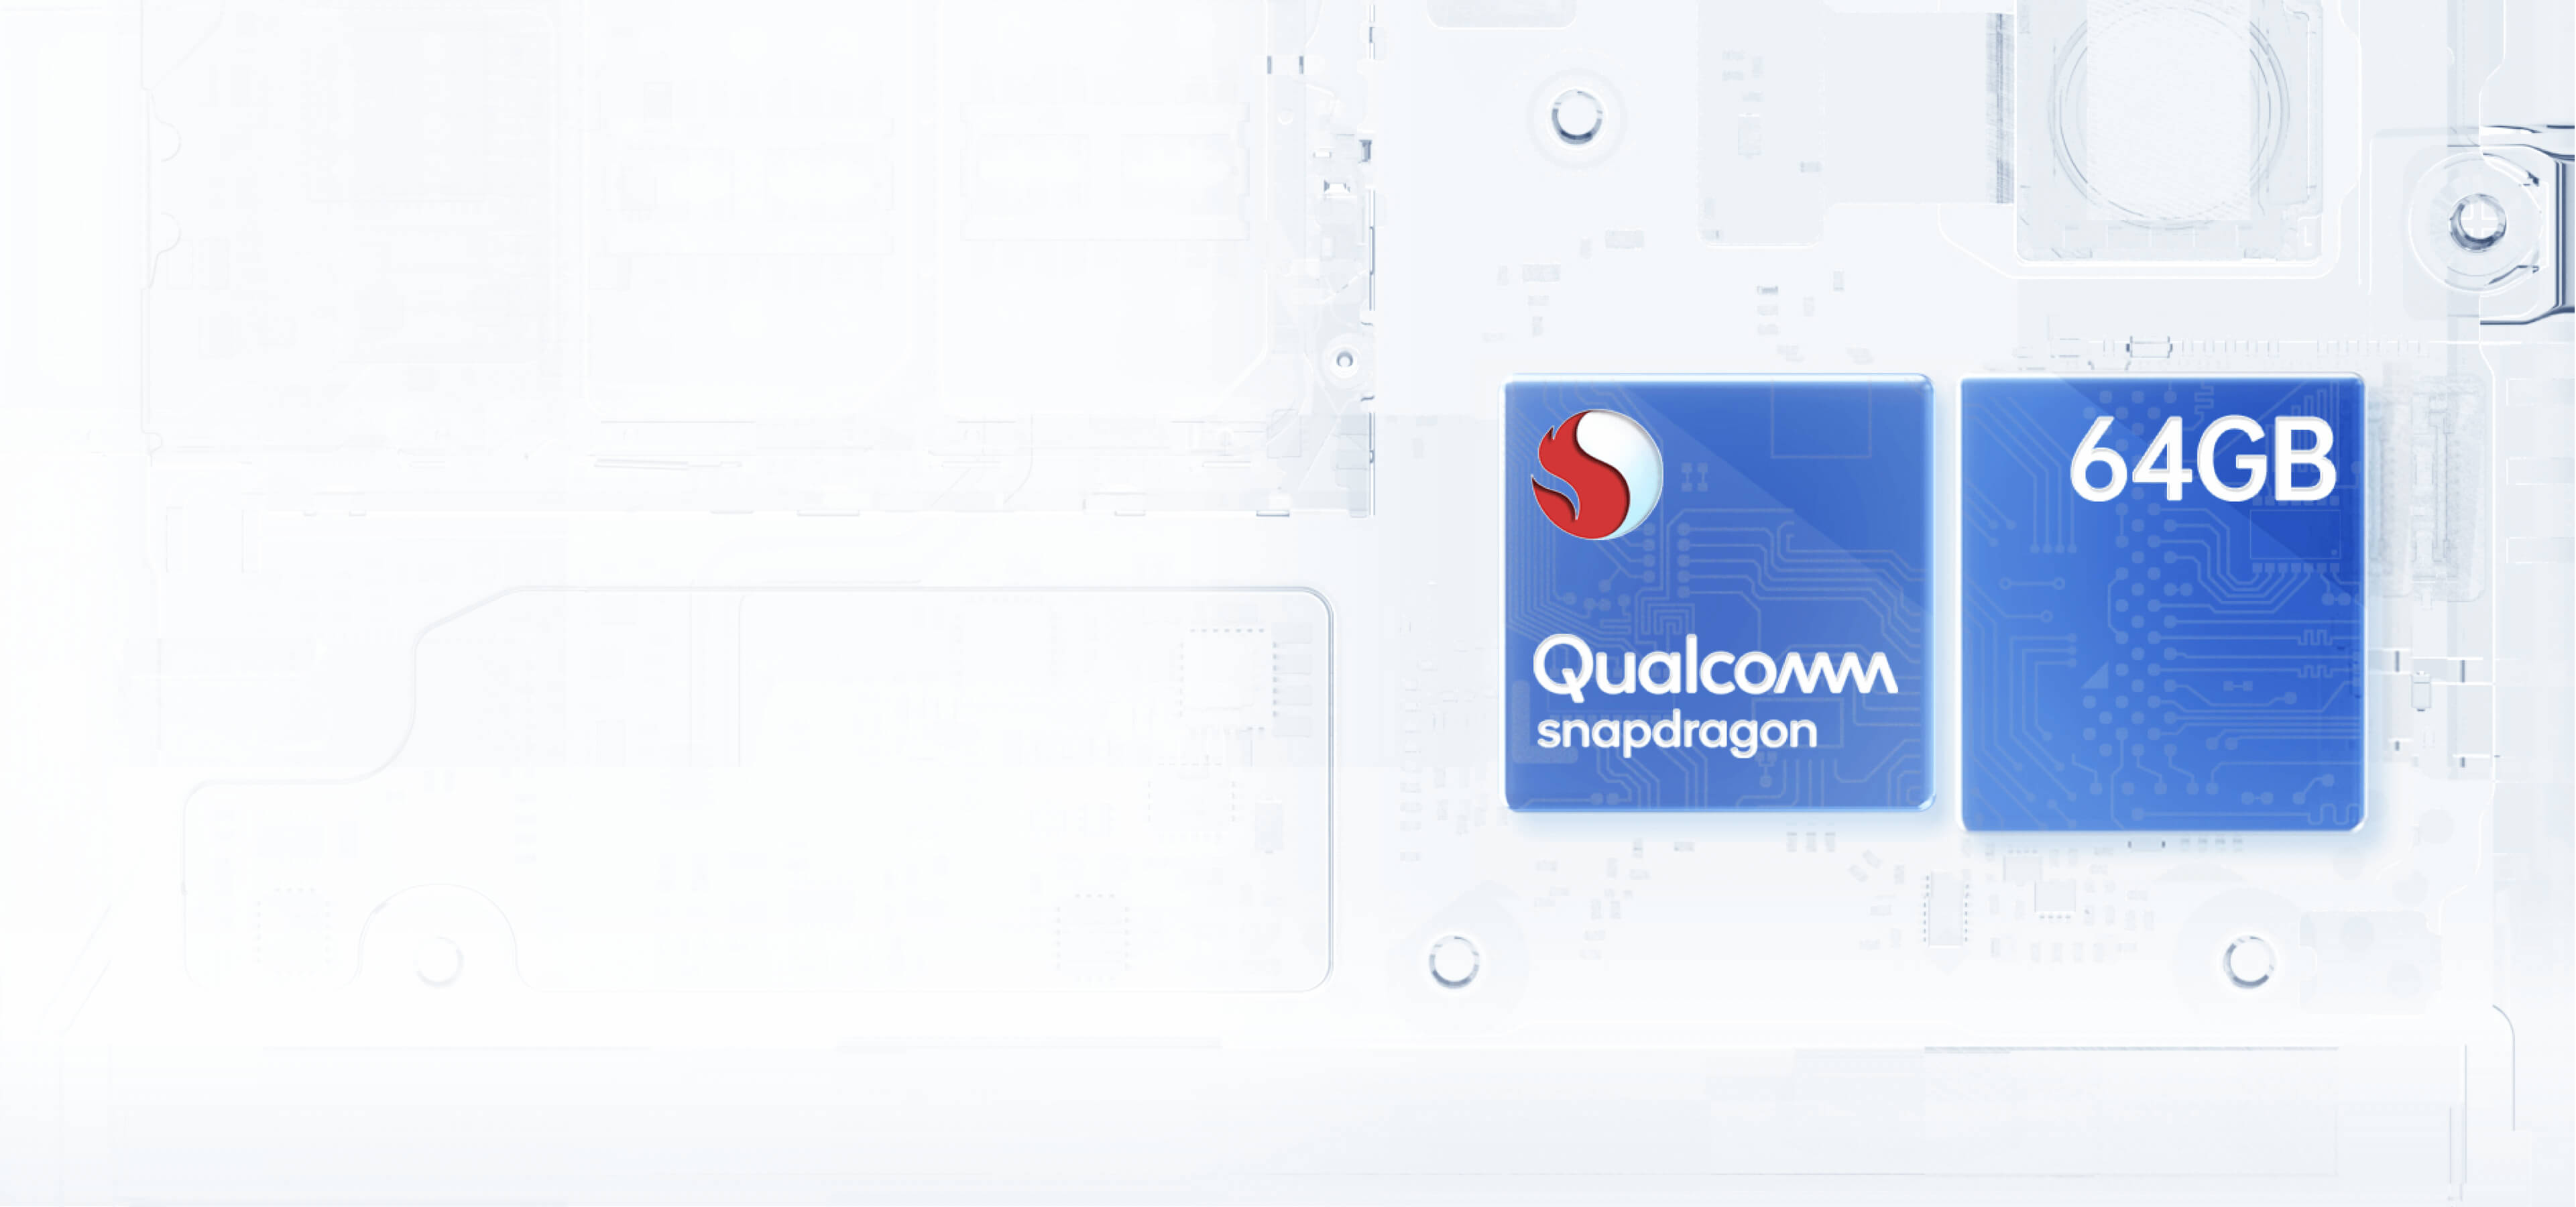 OPPO A53 Qualcomm Snapdragon